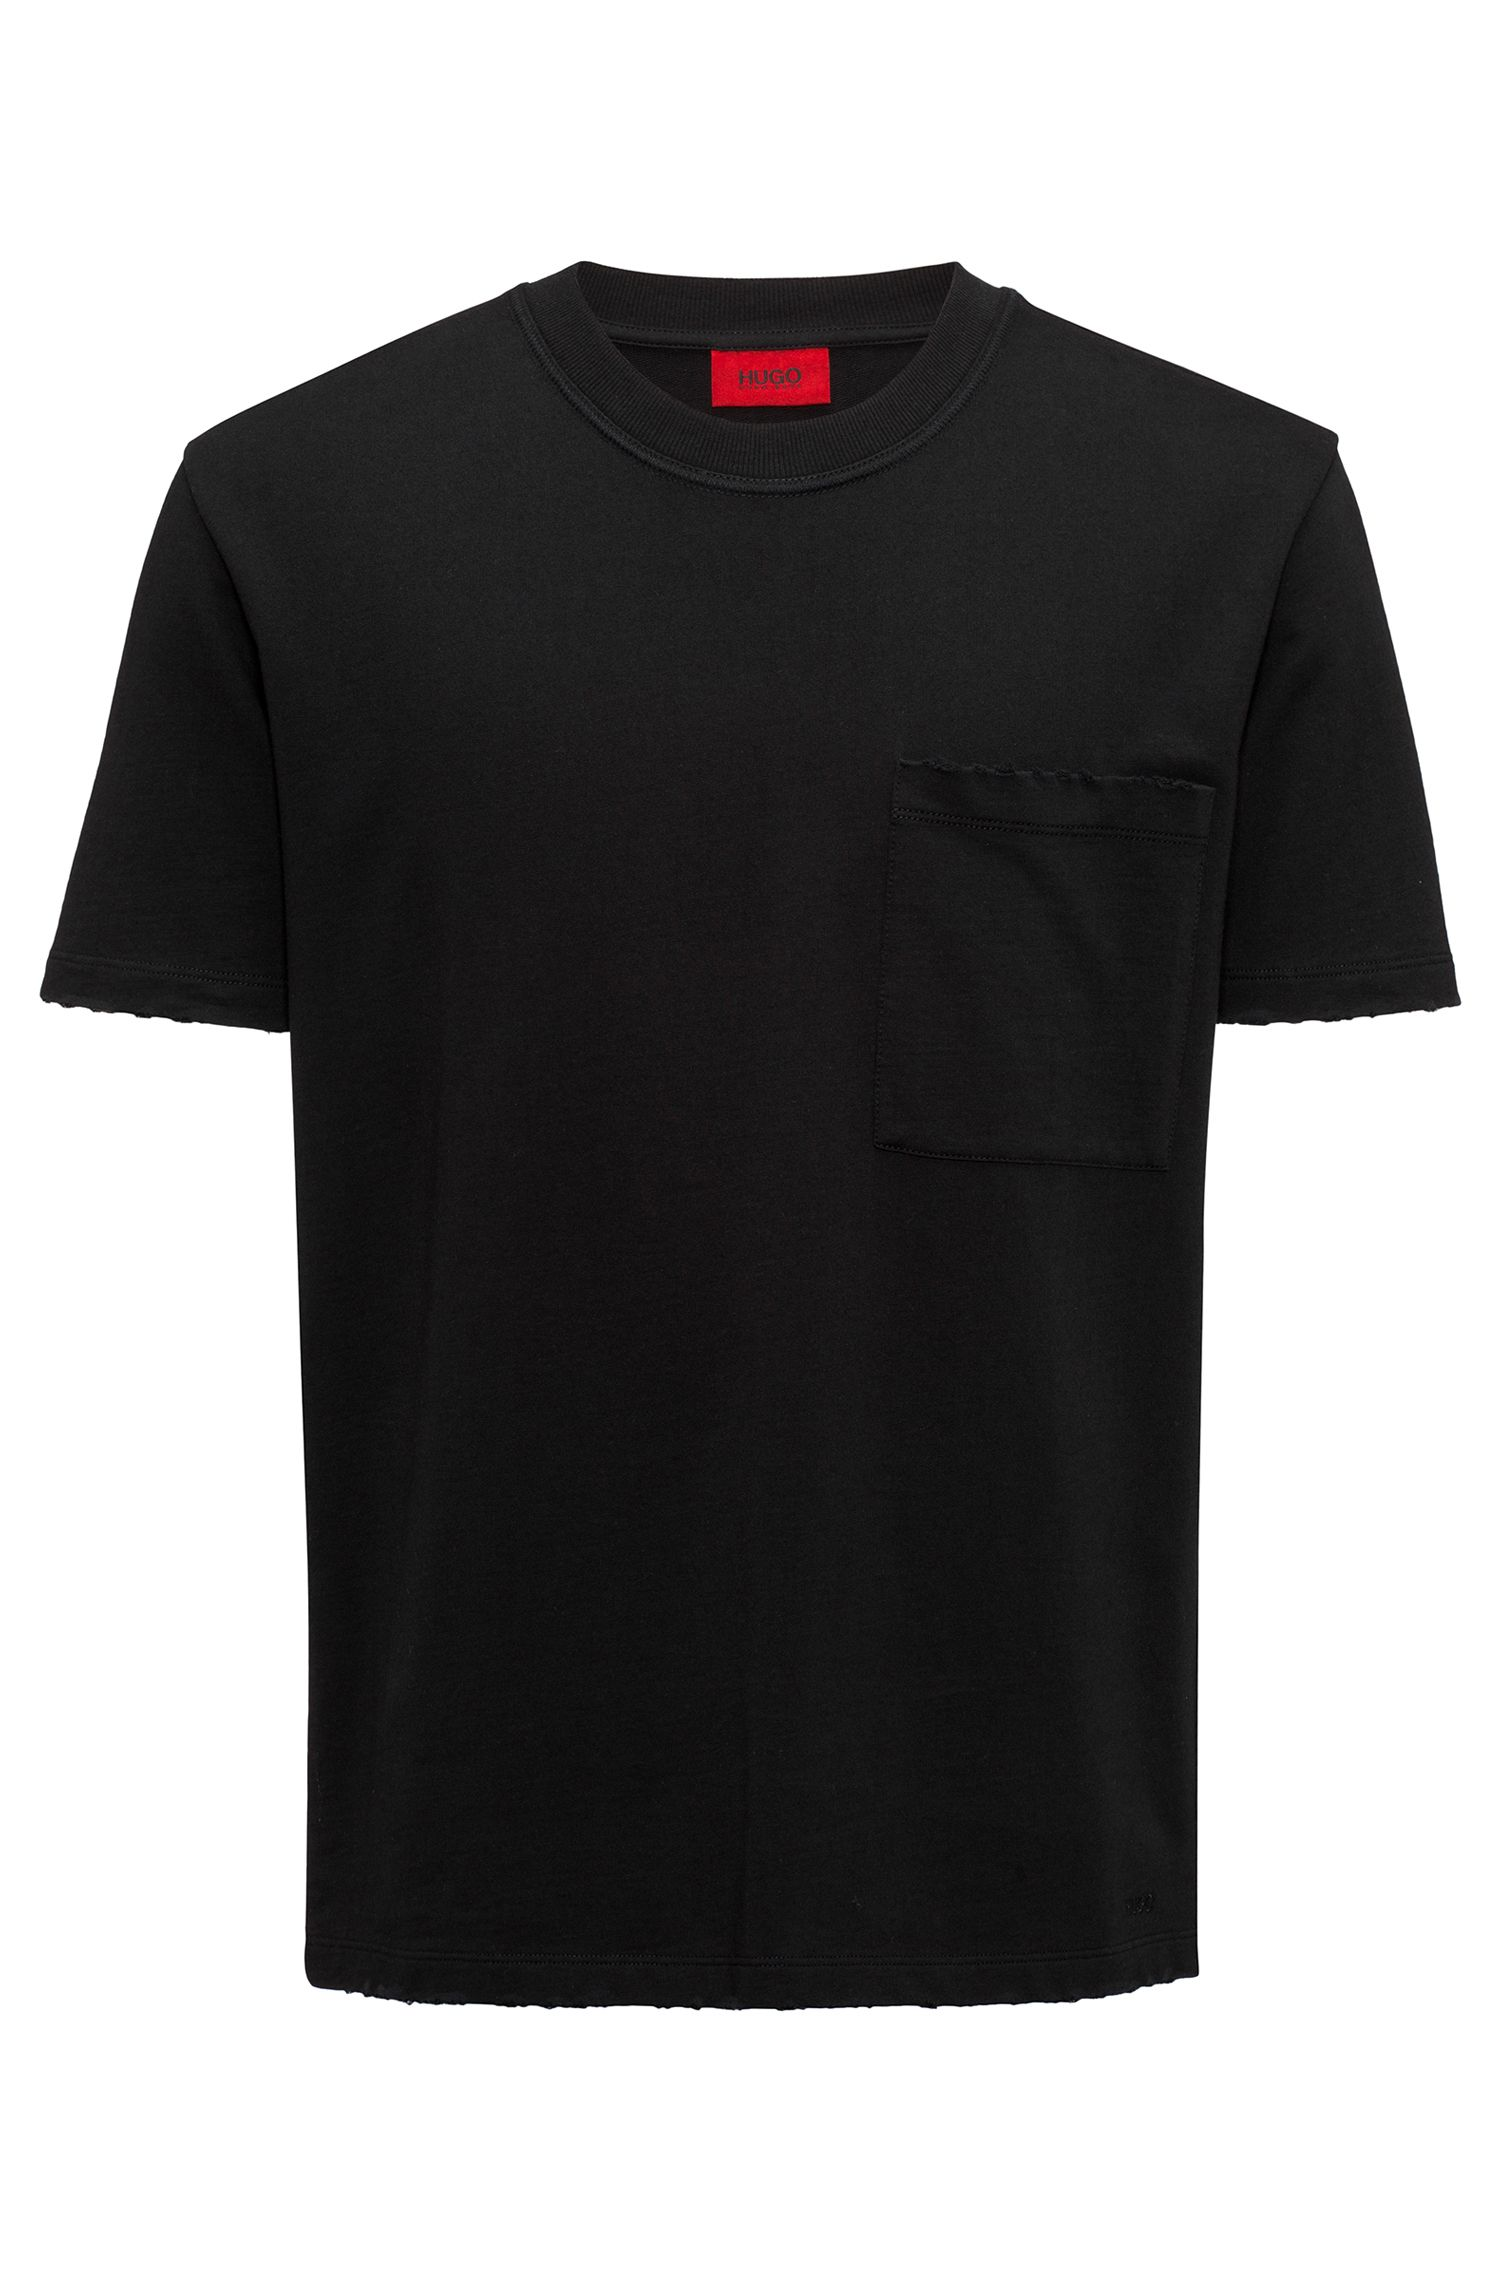 Destroyed Cotton T-Shirt   Drizz